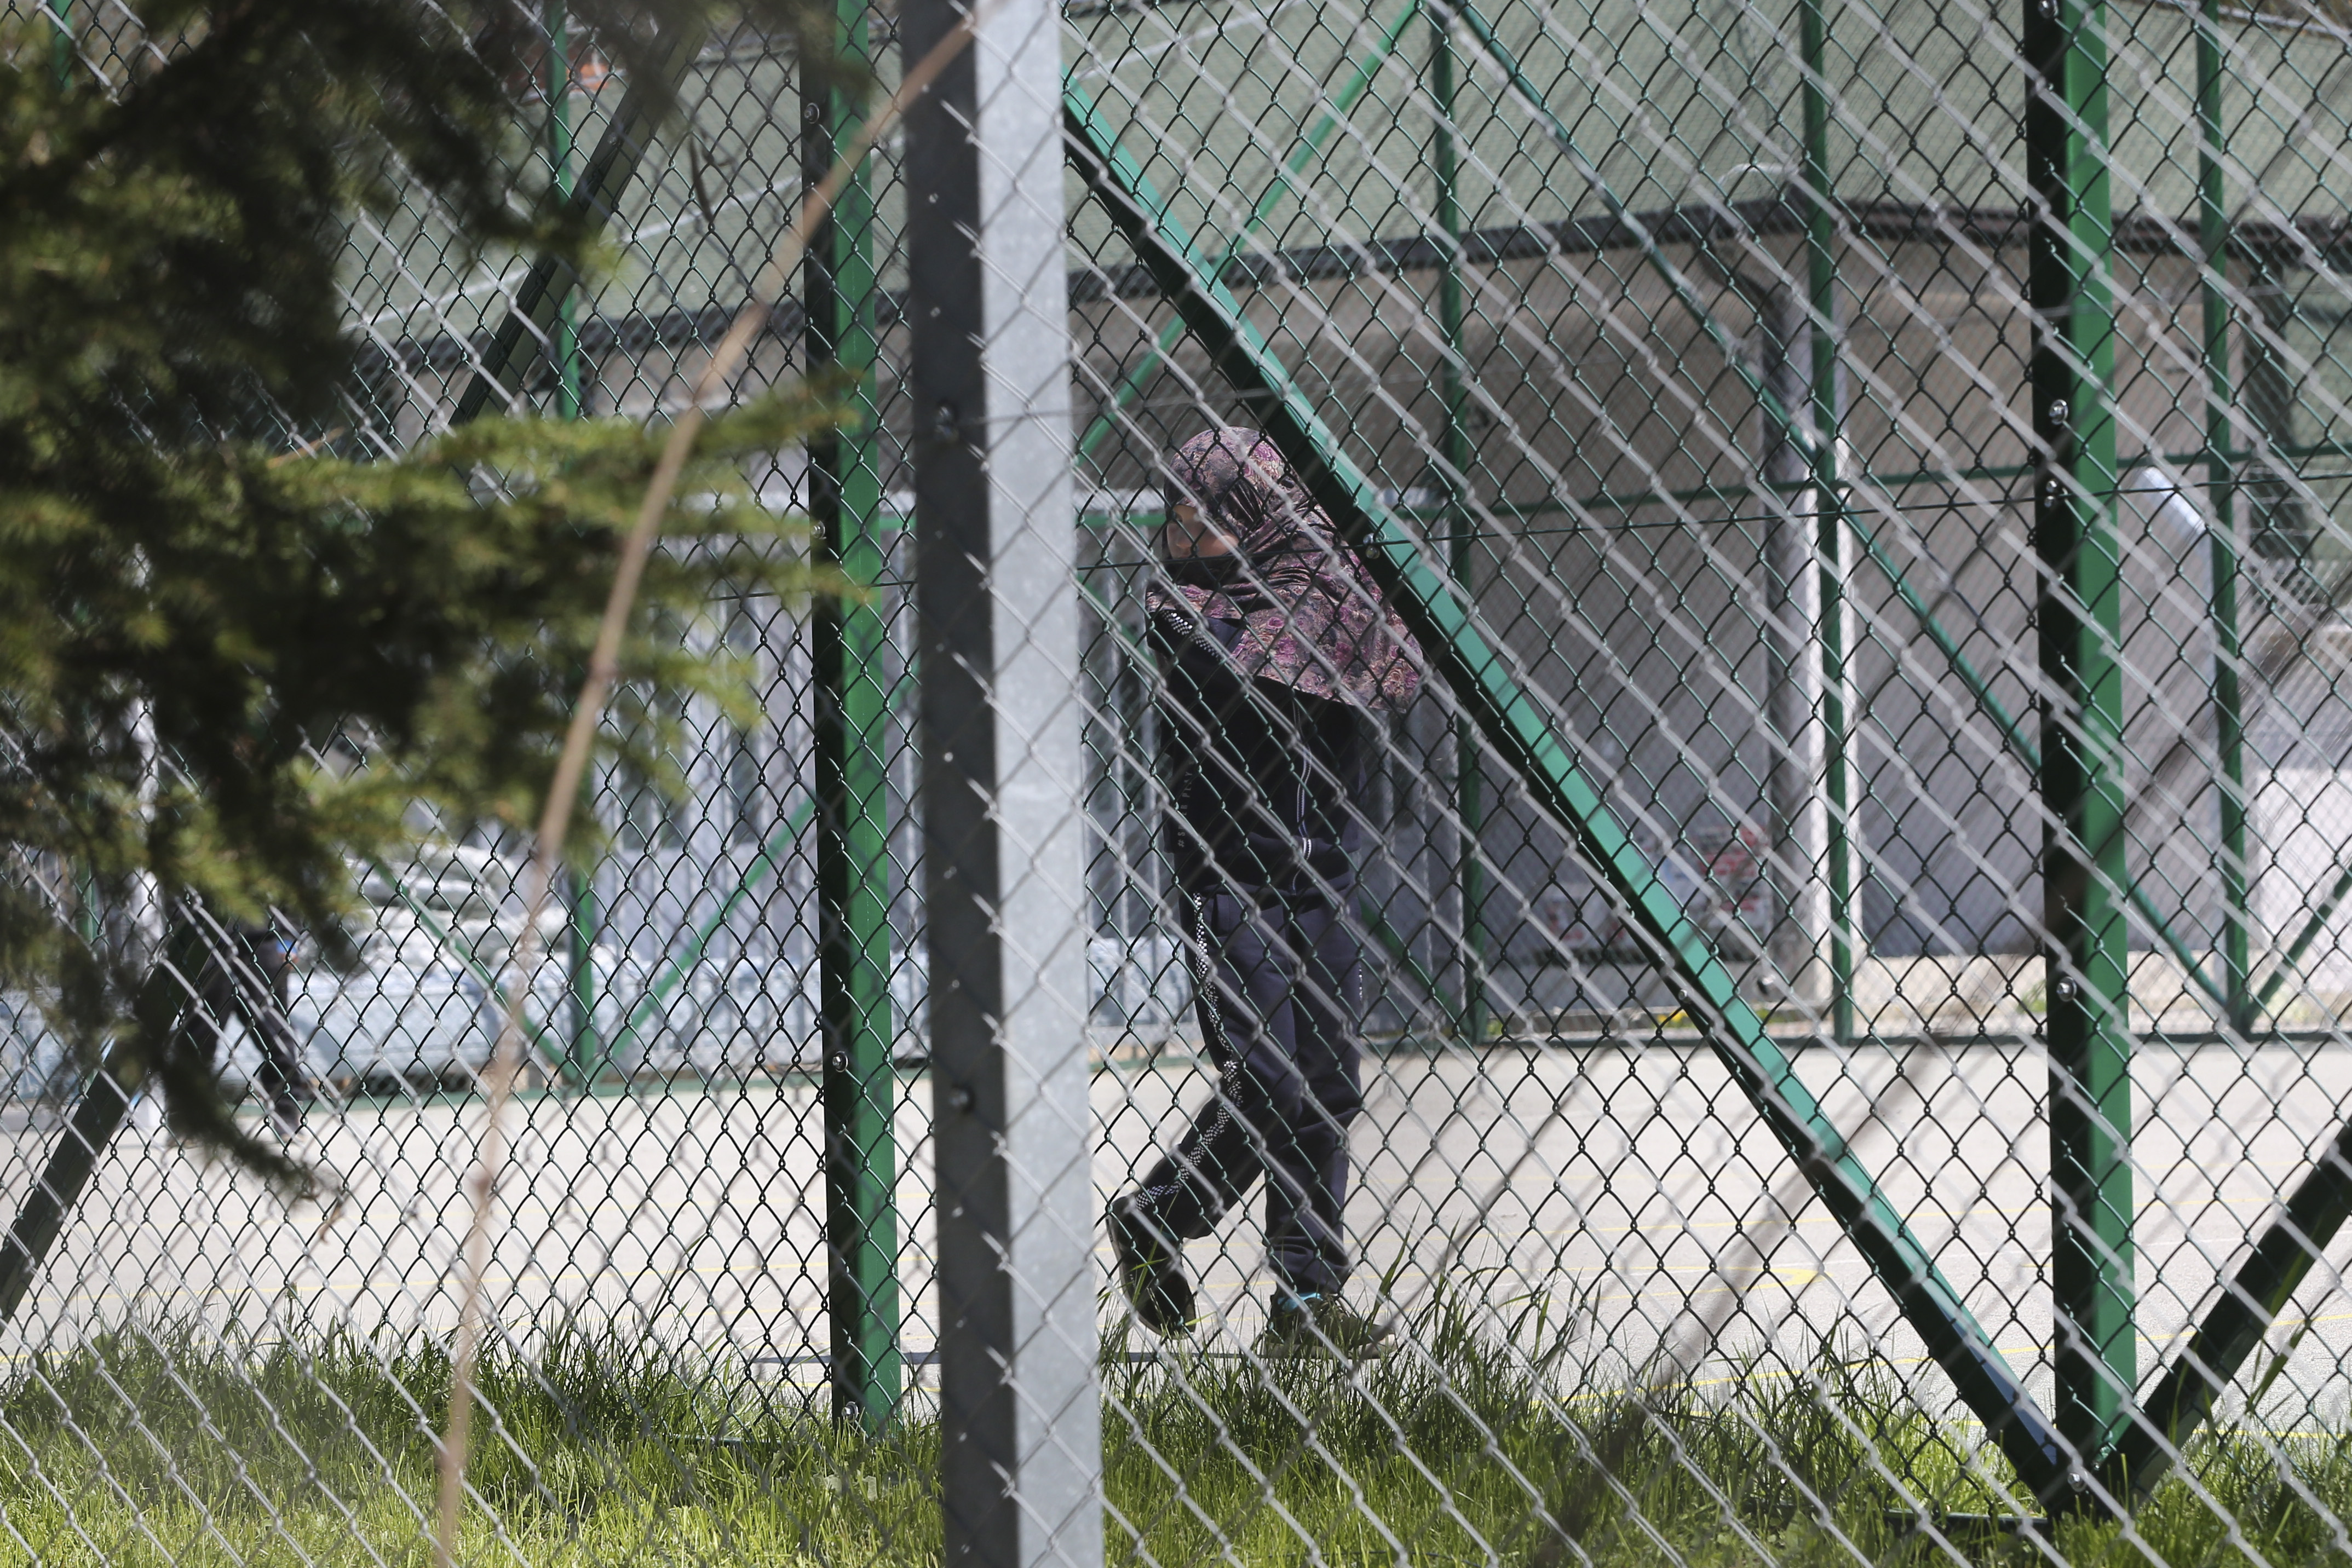 A girl walks inside a detention center where authorities brought back from Syria 110 Kosovar citizens, mostly women and children in the village of Vranidol on Sunday, April 20, 2019.  Four suspected fighters have been arrested, but other returnees will be cared for, before being sent to homes over the coming days according to Justice Minister Abelard Tahiri. (AP Photo/Visar Kryeziu)